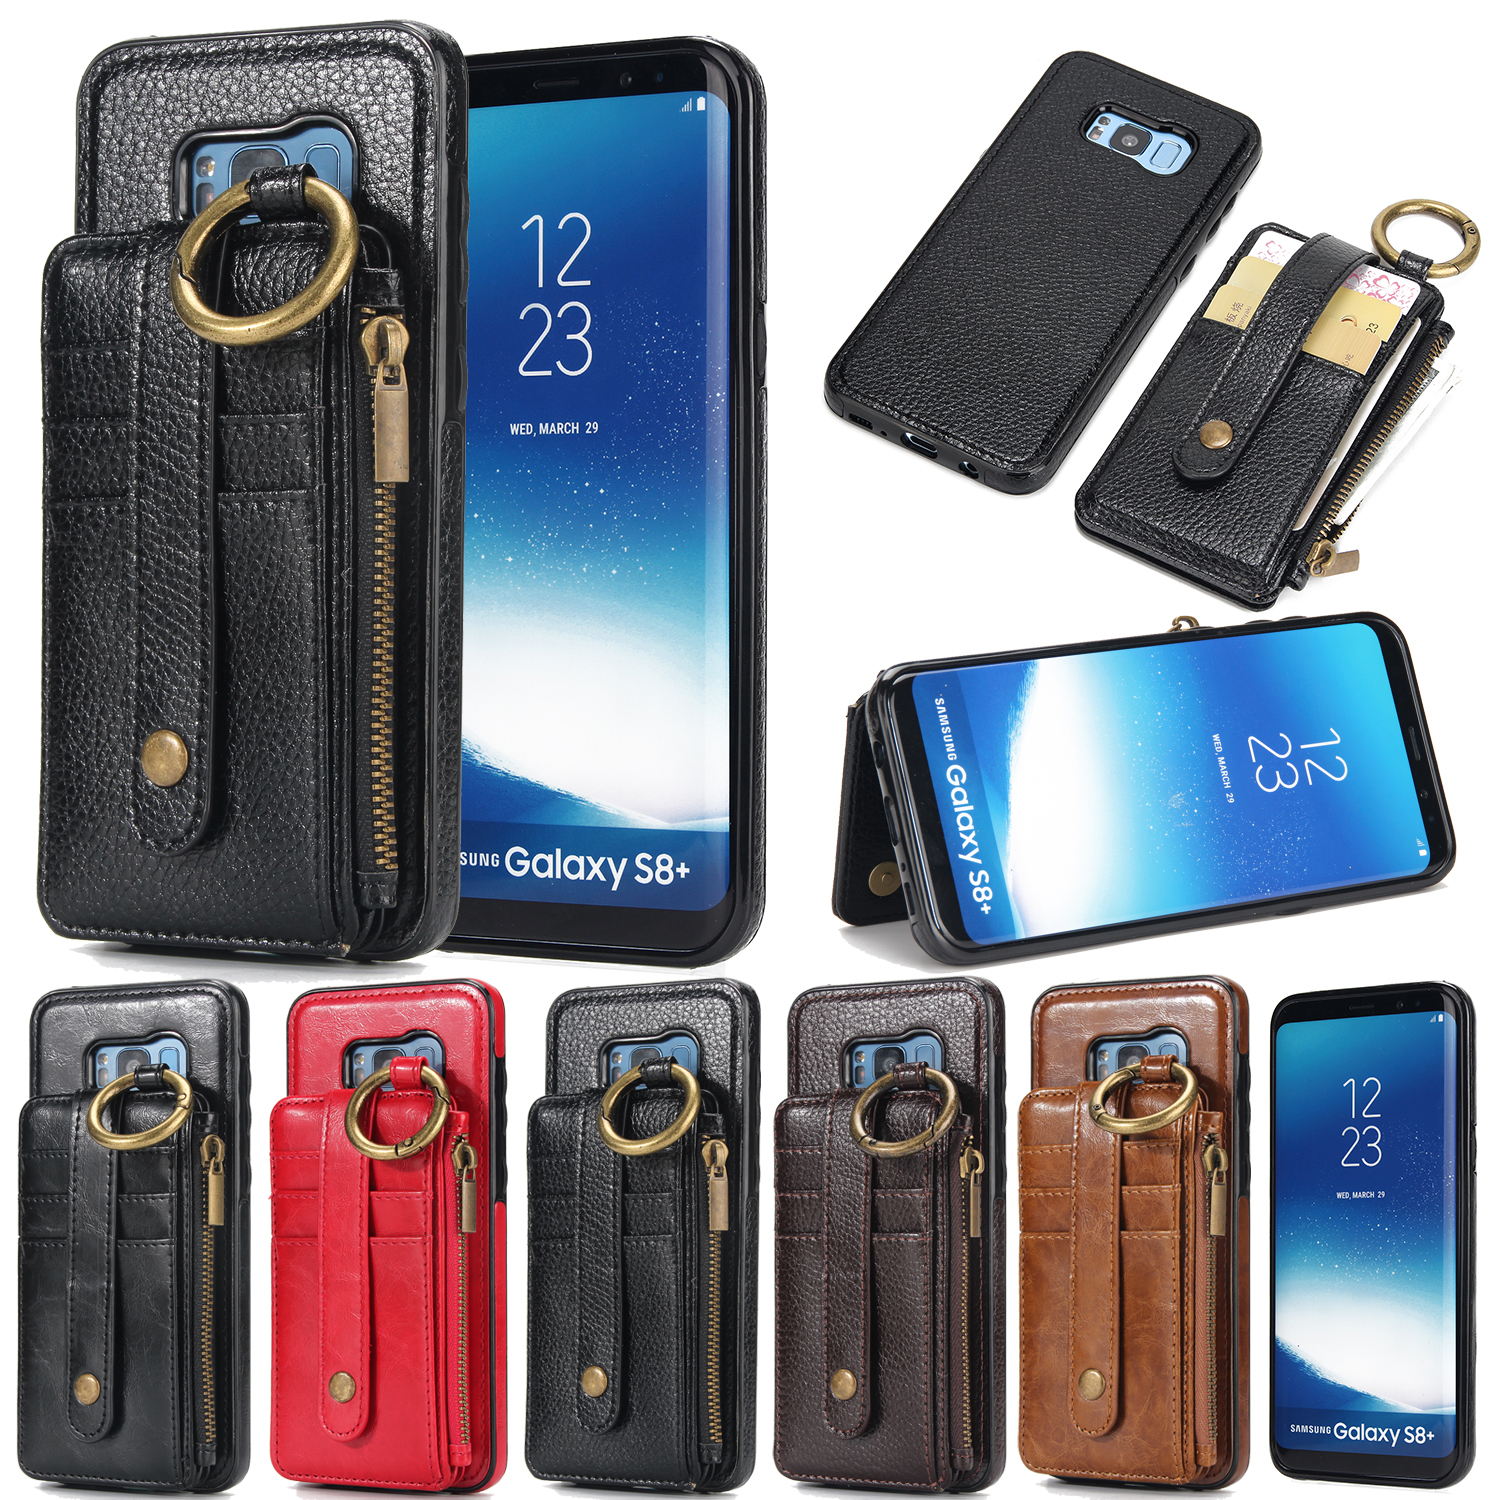 Leather Wallet Flip Case for Iphone X 8 7 6 6S Plus 5 5S SE Samsung S8 S7 S6 Litchi Pattern Card Stand Detachable Dual Use Cover